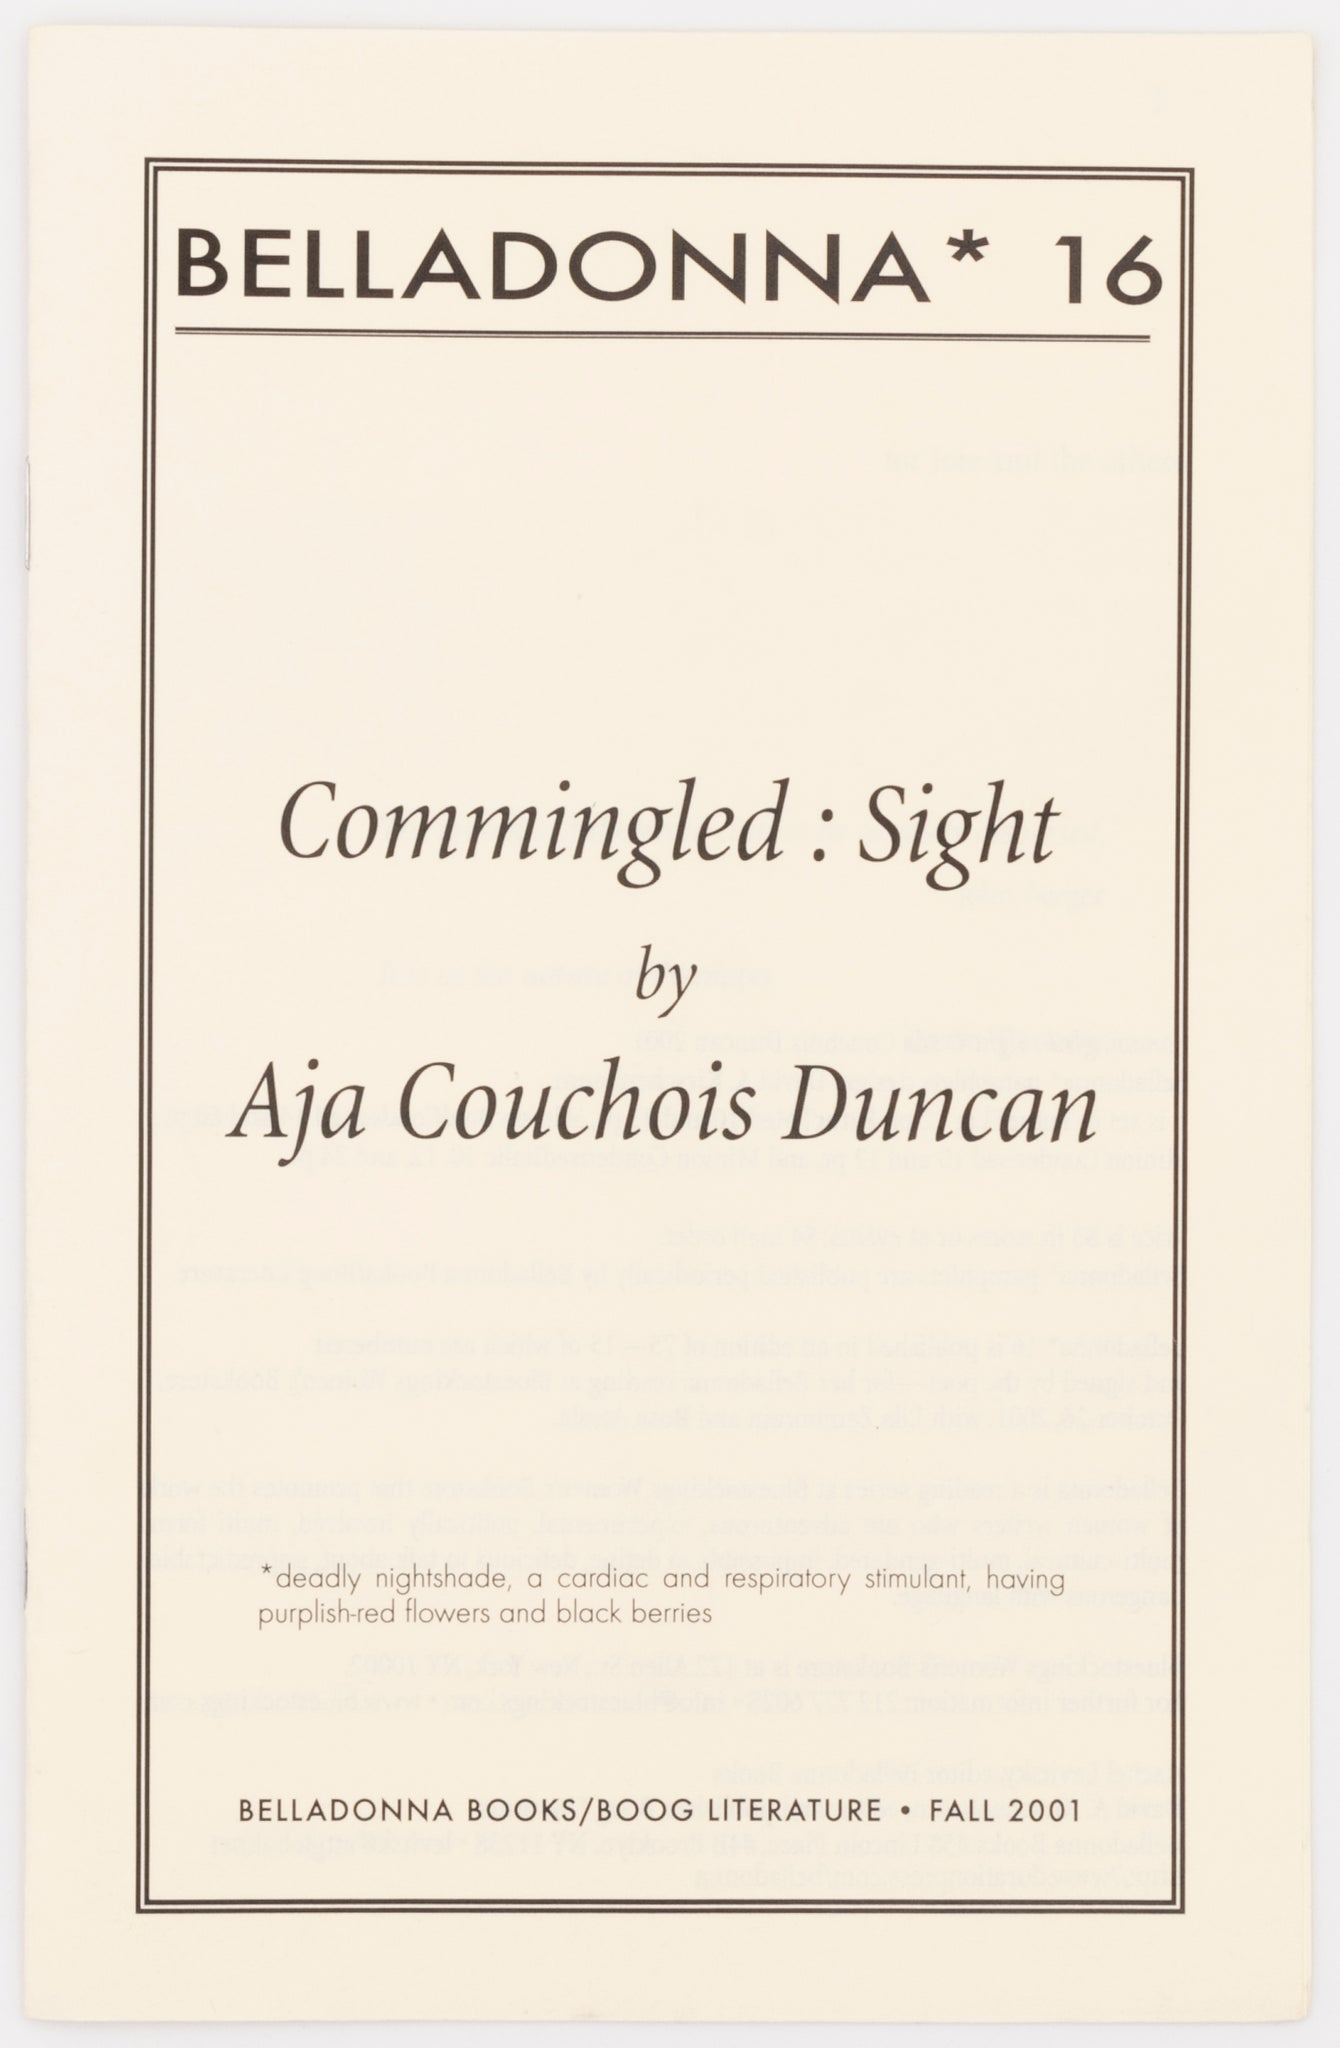 Commingled : Sight (Belladonna* #16)